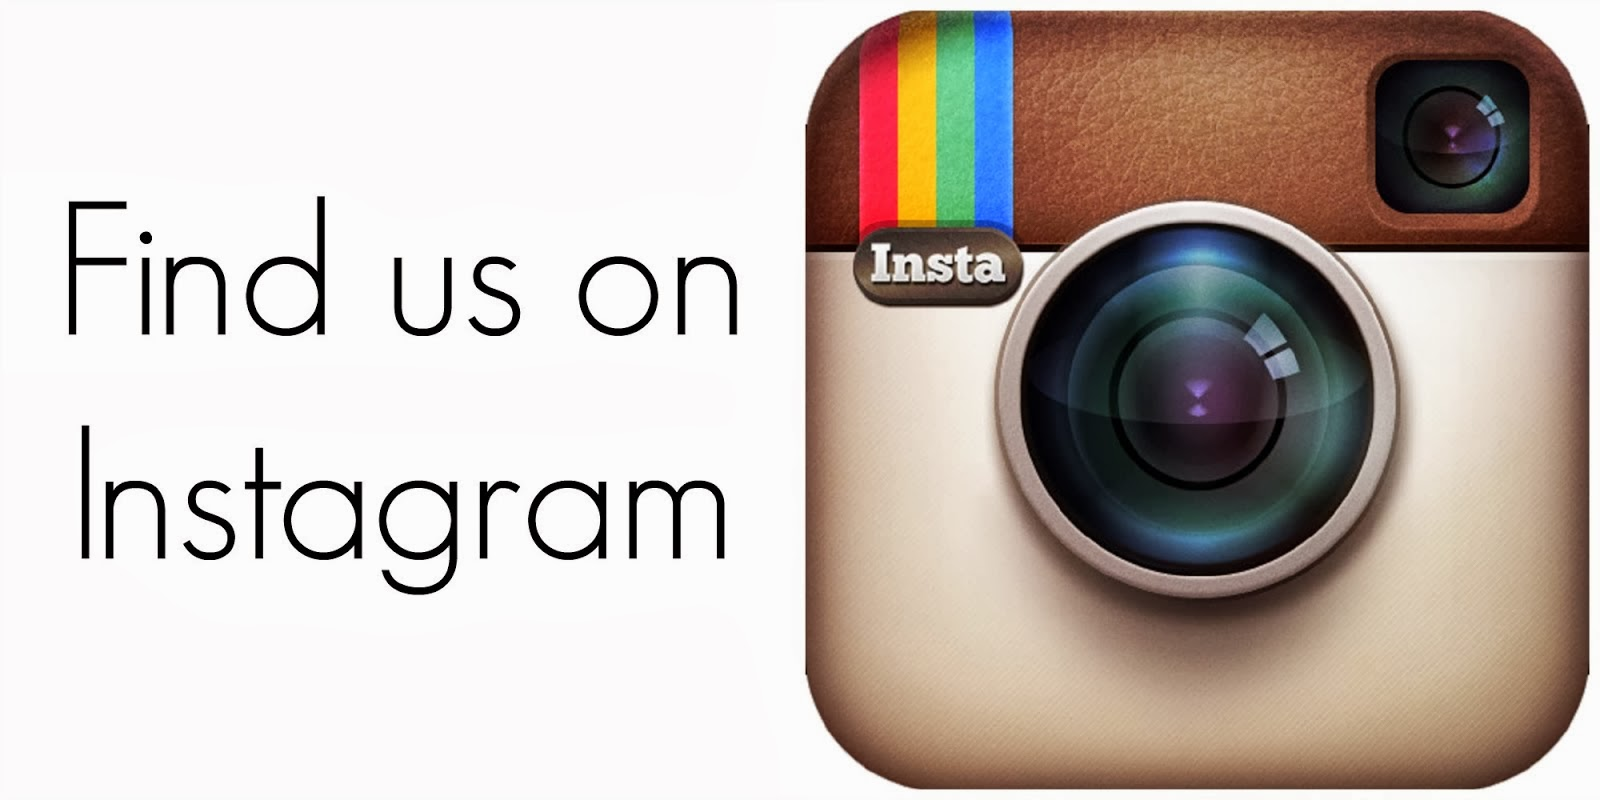 Accuracast searchstarz blog top brands that are killing it on instagram as the growth of instagram starts to rival that of twitter and facebook little way off yet it is clear why businesses are jumping on the band wagon ccuart Gallery